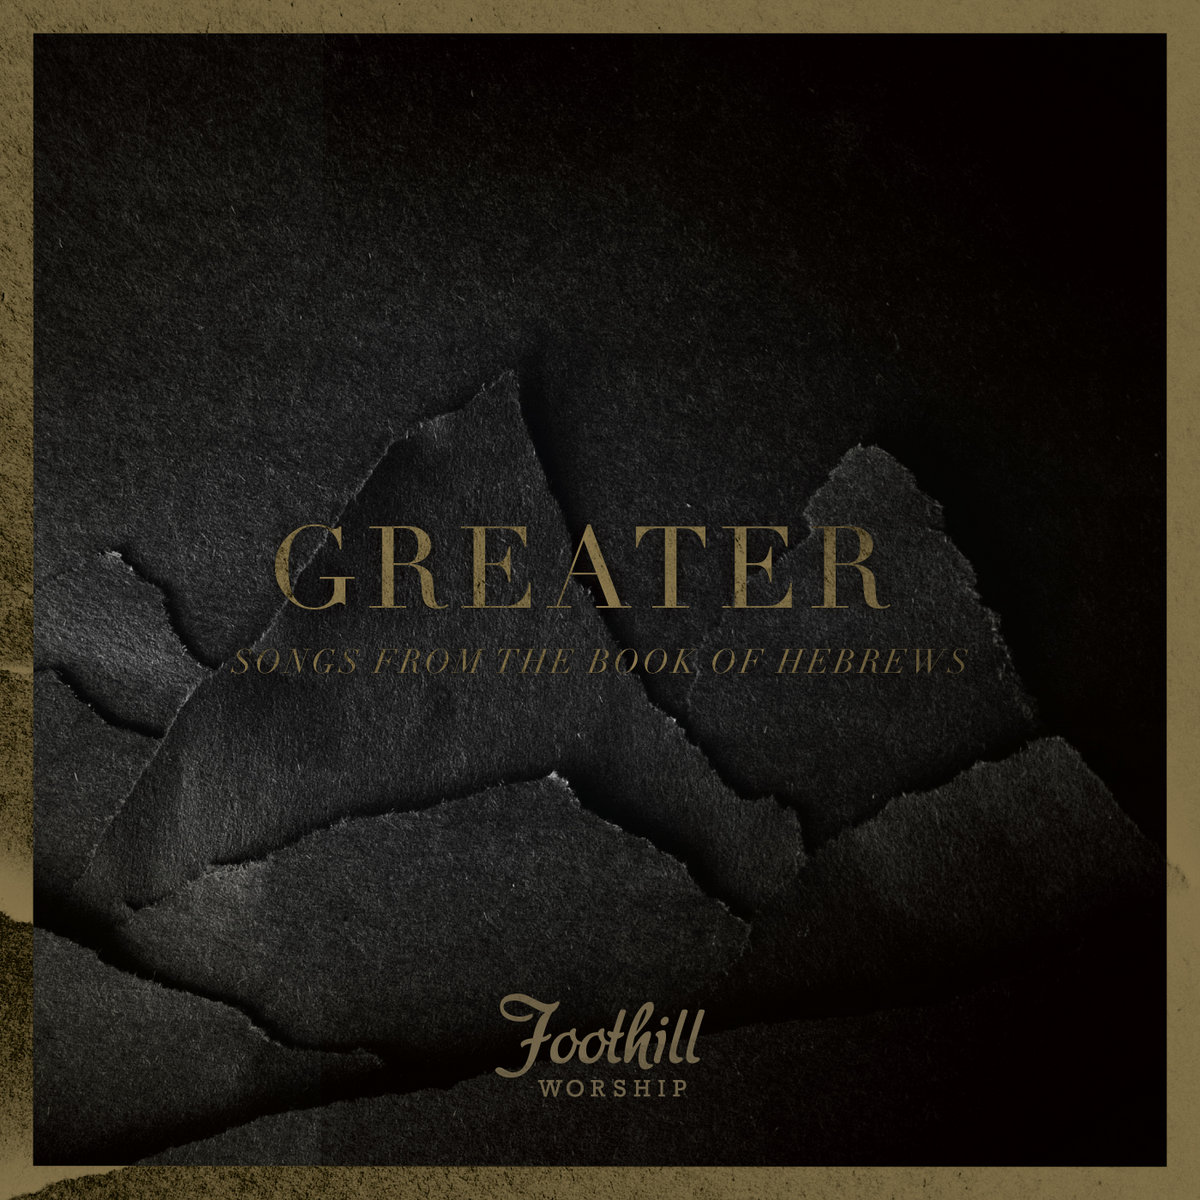 Greater: Songs From the Book of Hebrews   Foothill Worship